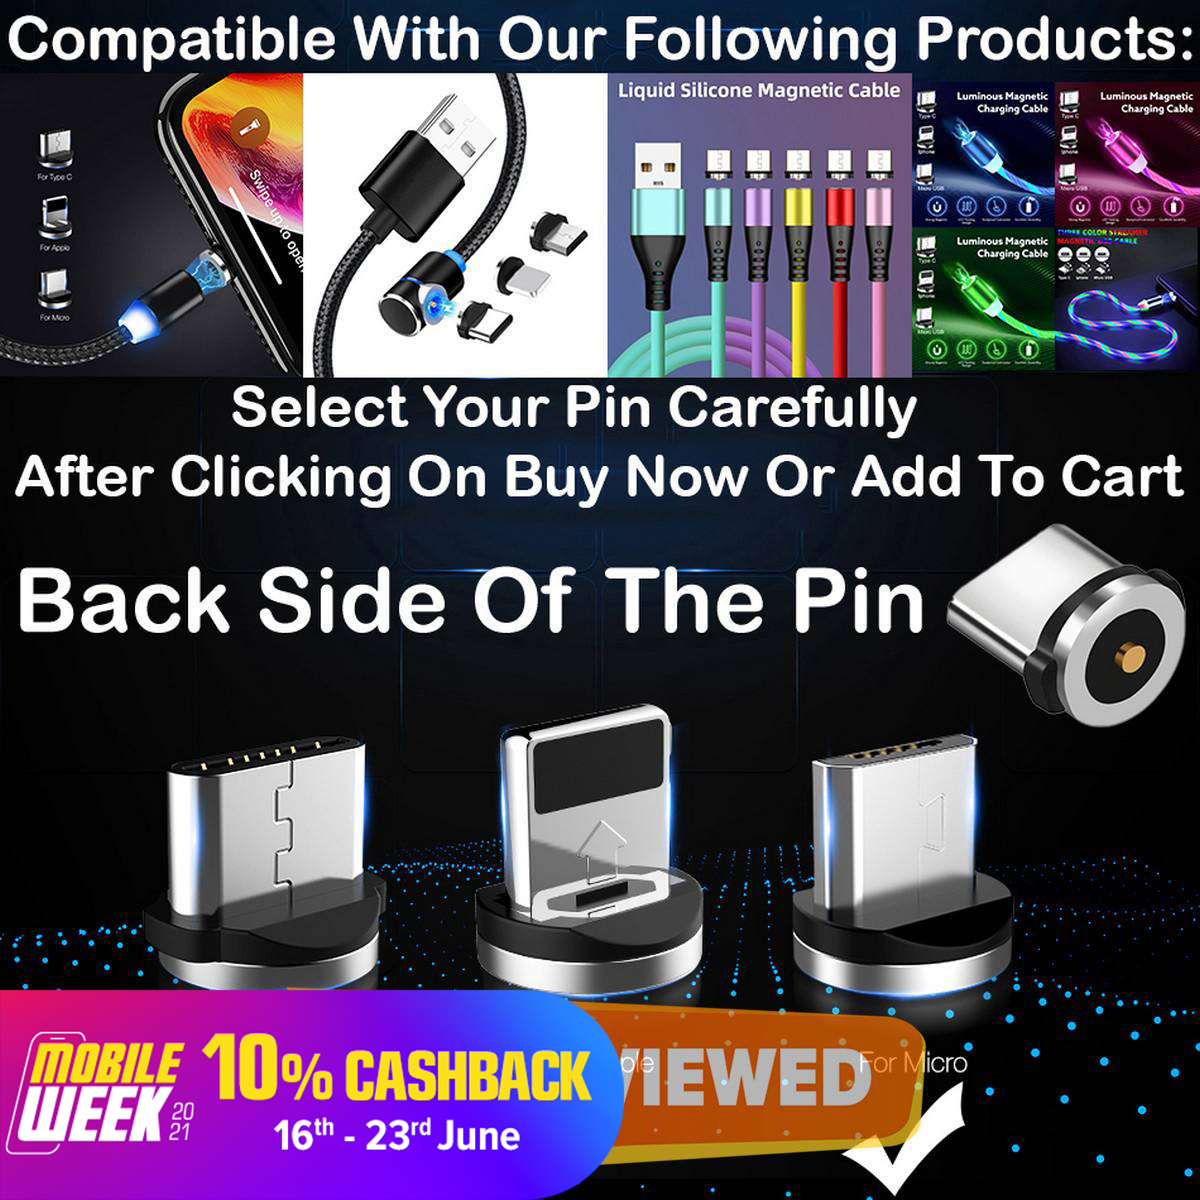 Original Magnetic Fast Charging Pin Only - Micro USB Android - iPhone - Type C